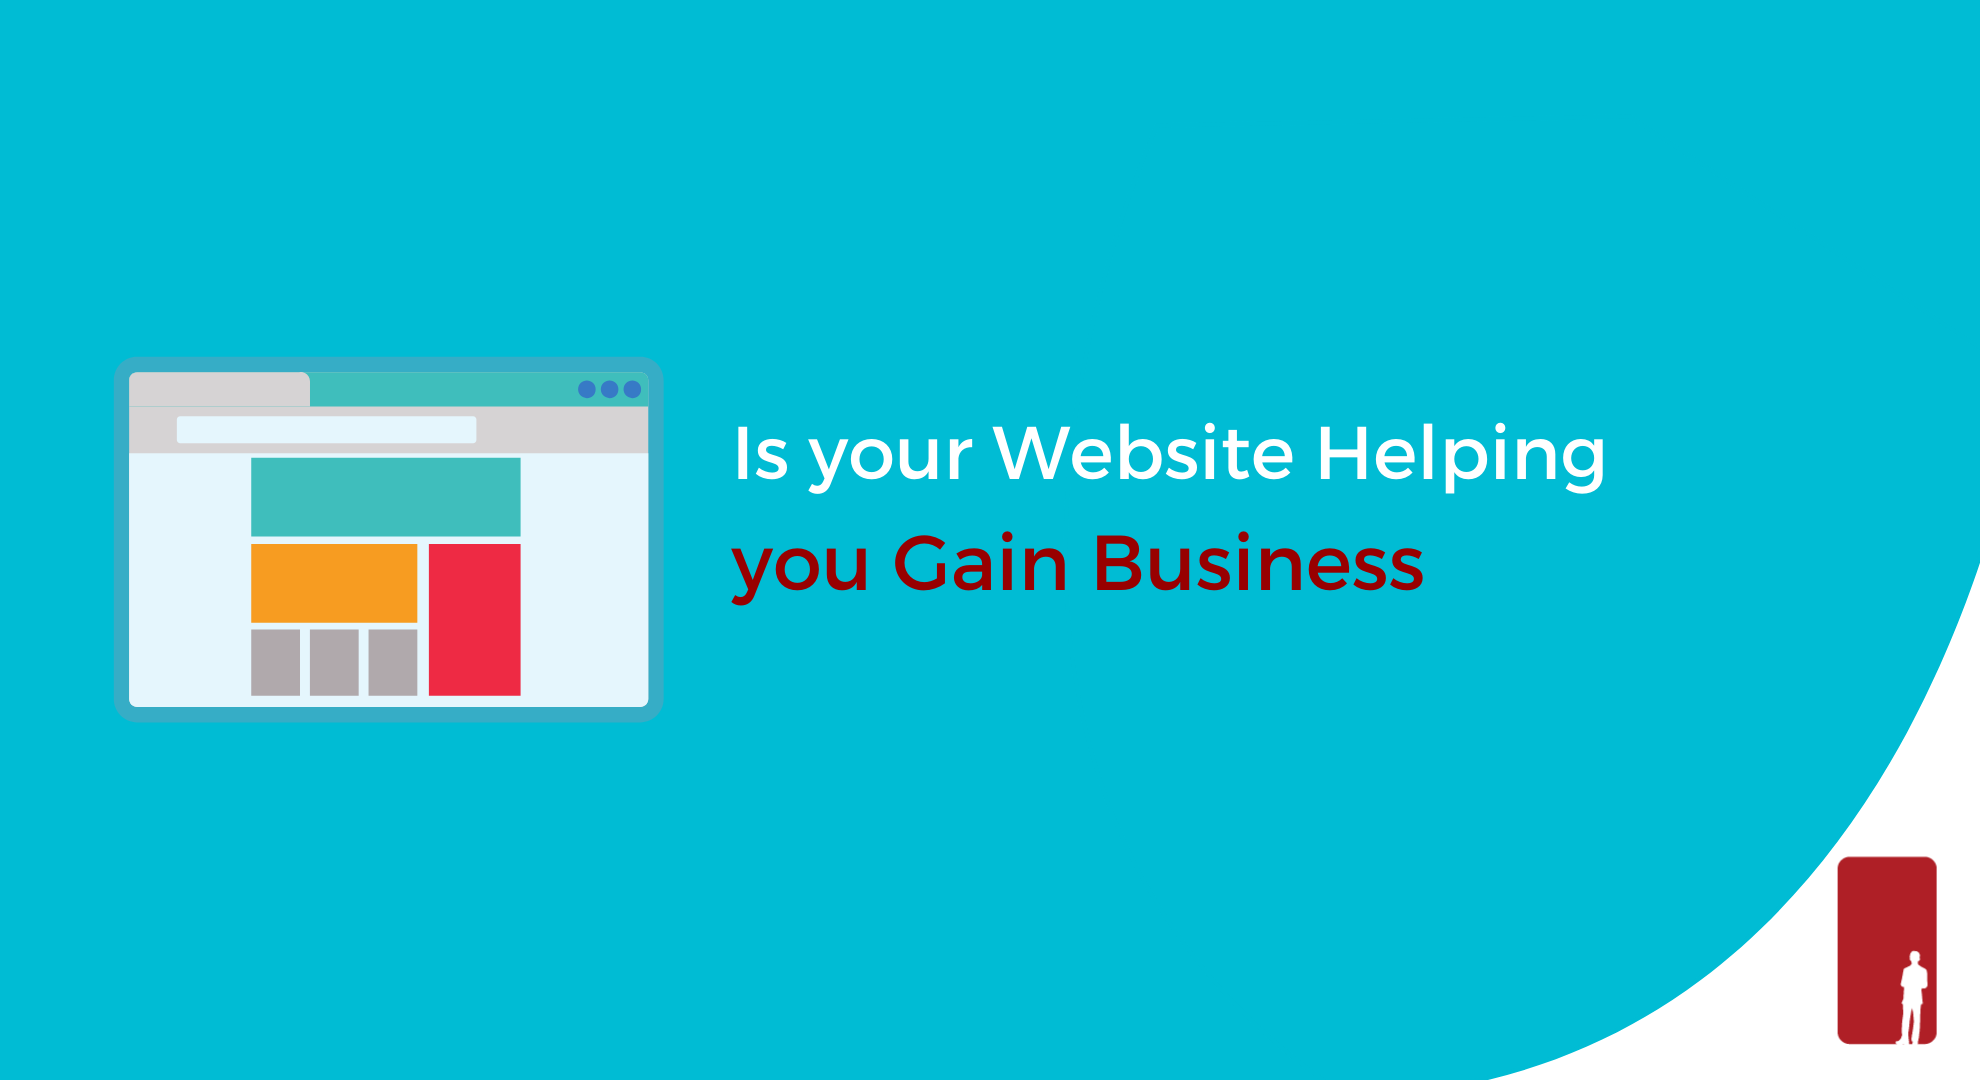 Is your Website Helping you Gain Business